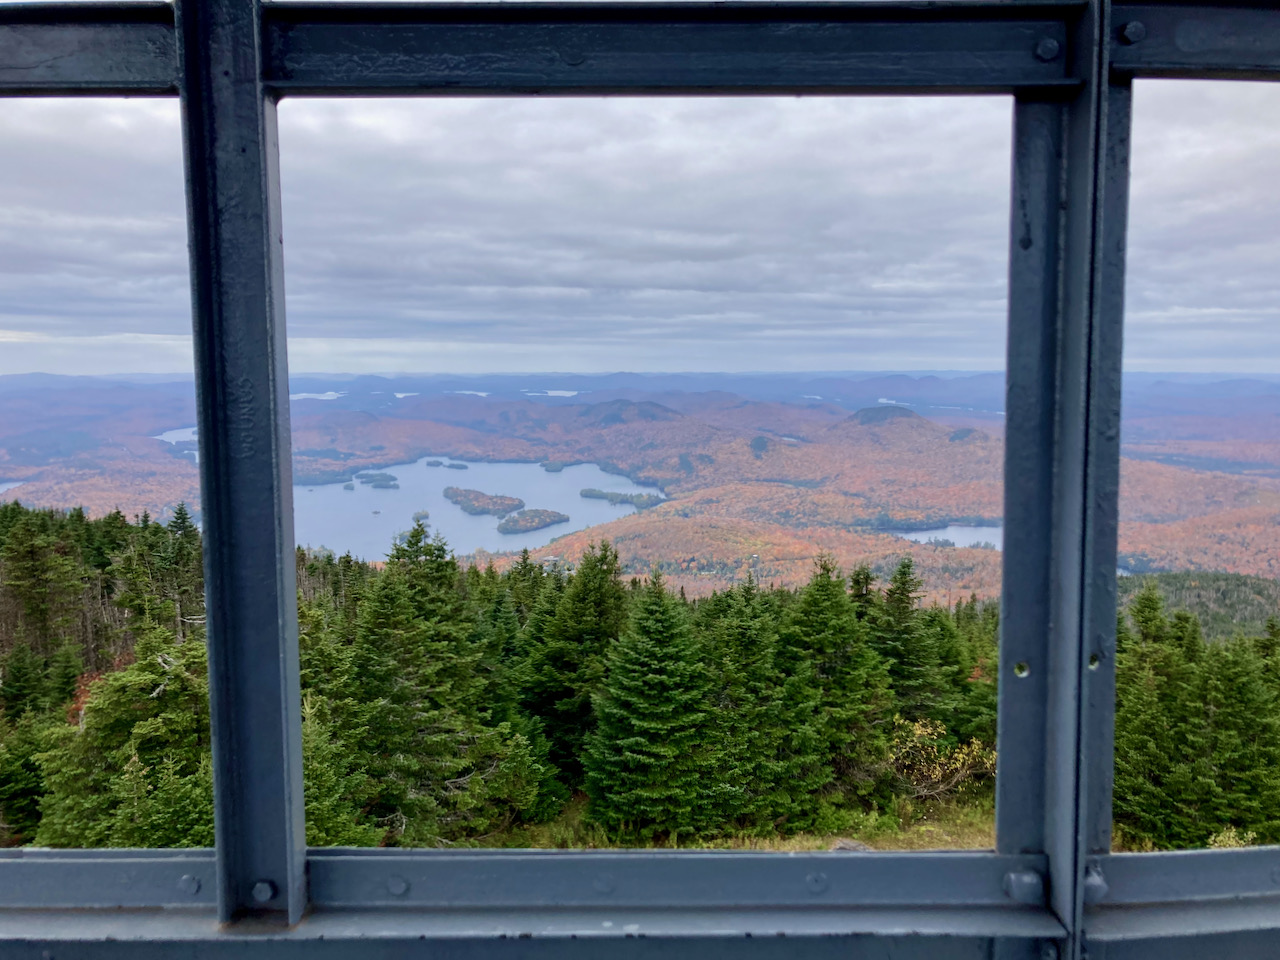 View of surrounding countryside through windows of Fire tower.